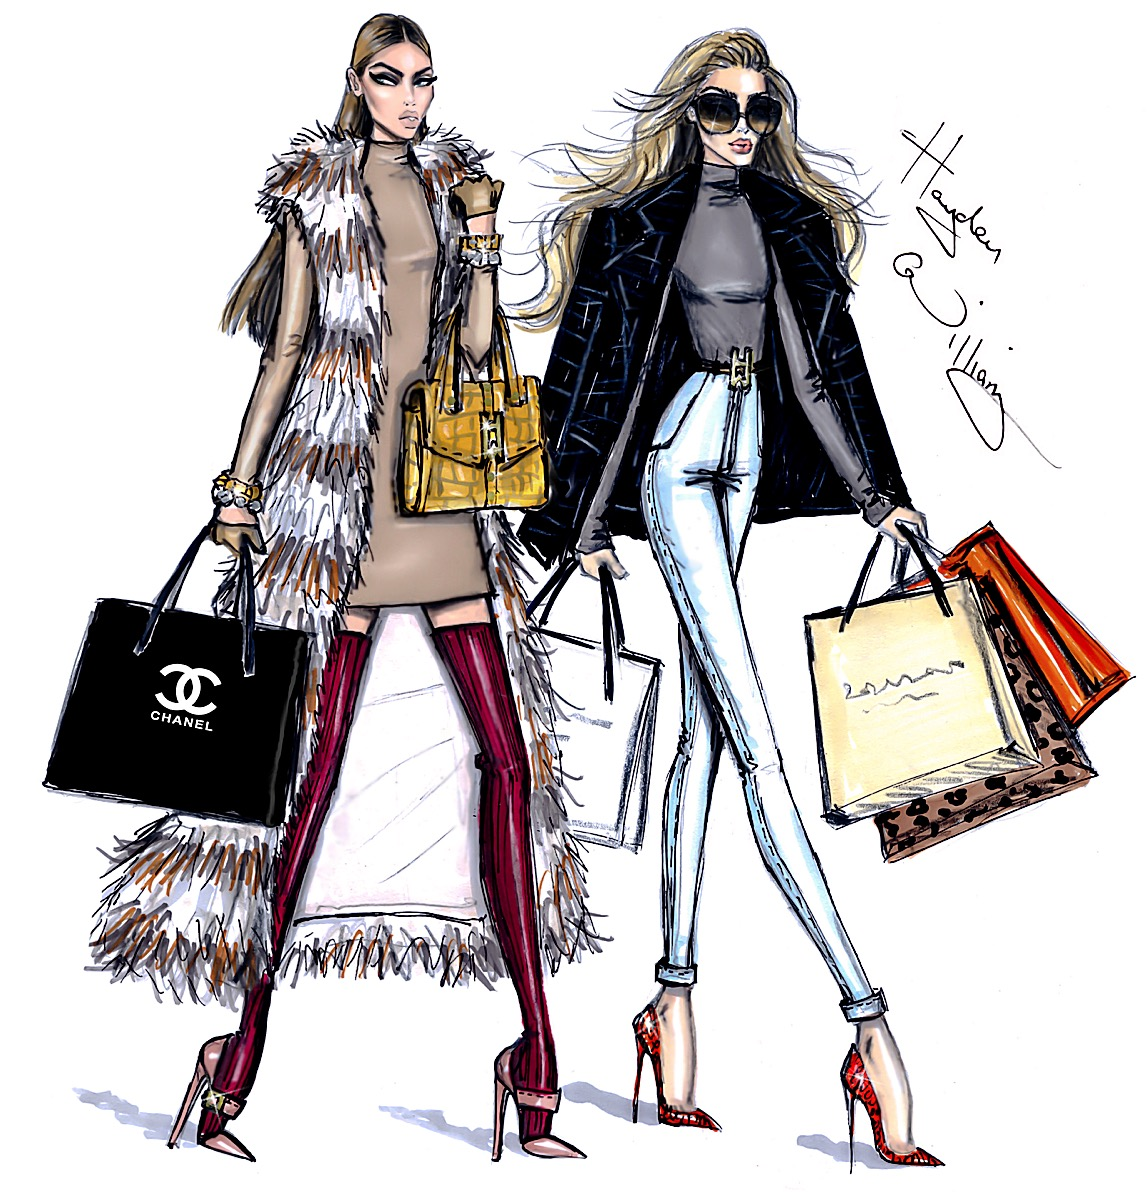 woman luxury shopping bags illustration